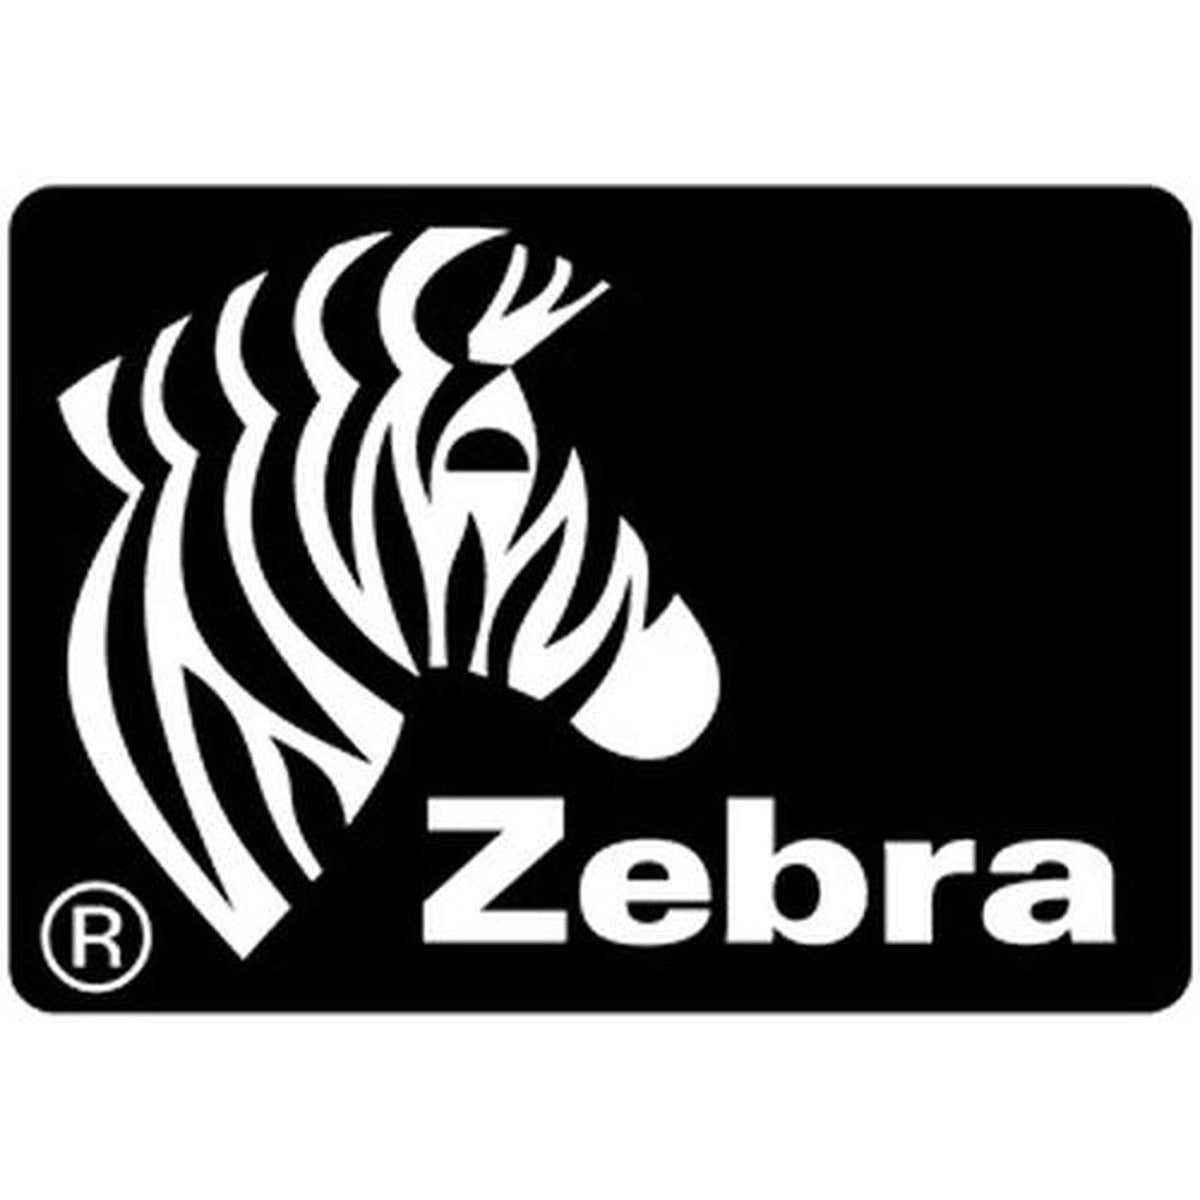 Zebra Uncoated Direct Thermal Perforated Permanent Adhesive Paper Label 76 x 51 mm, White | 800283-205